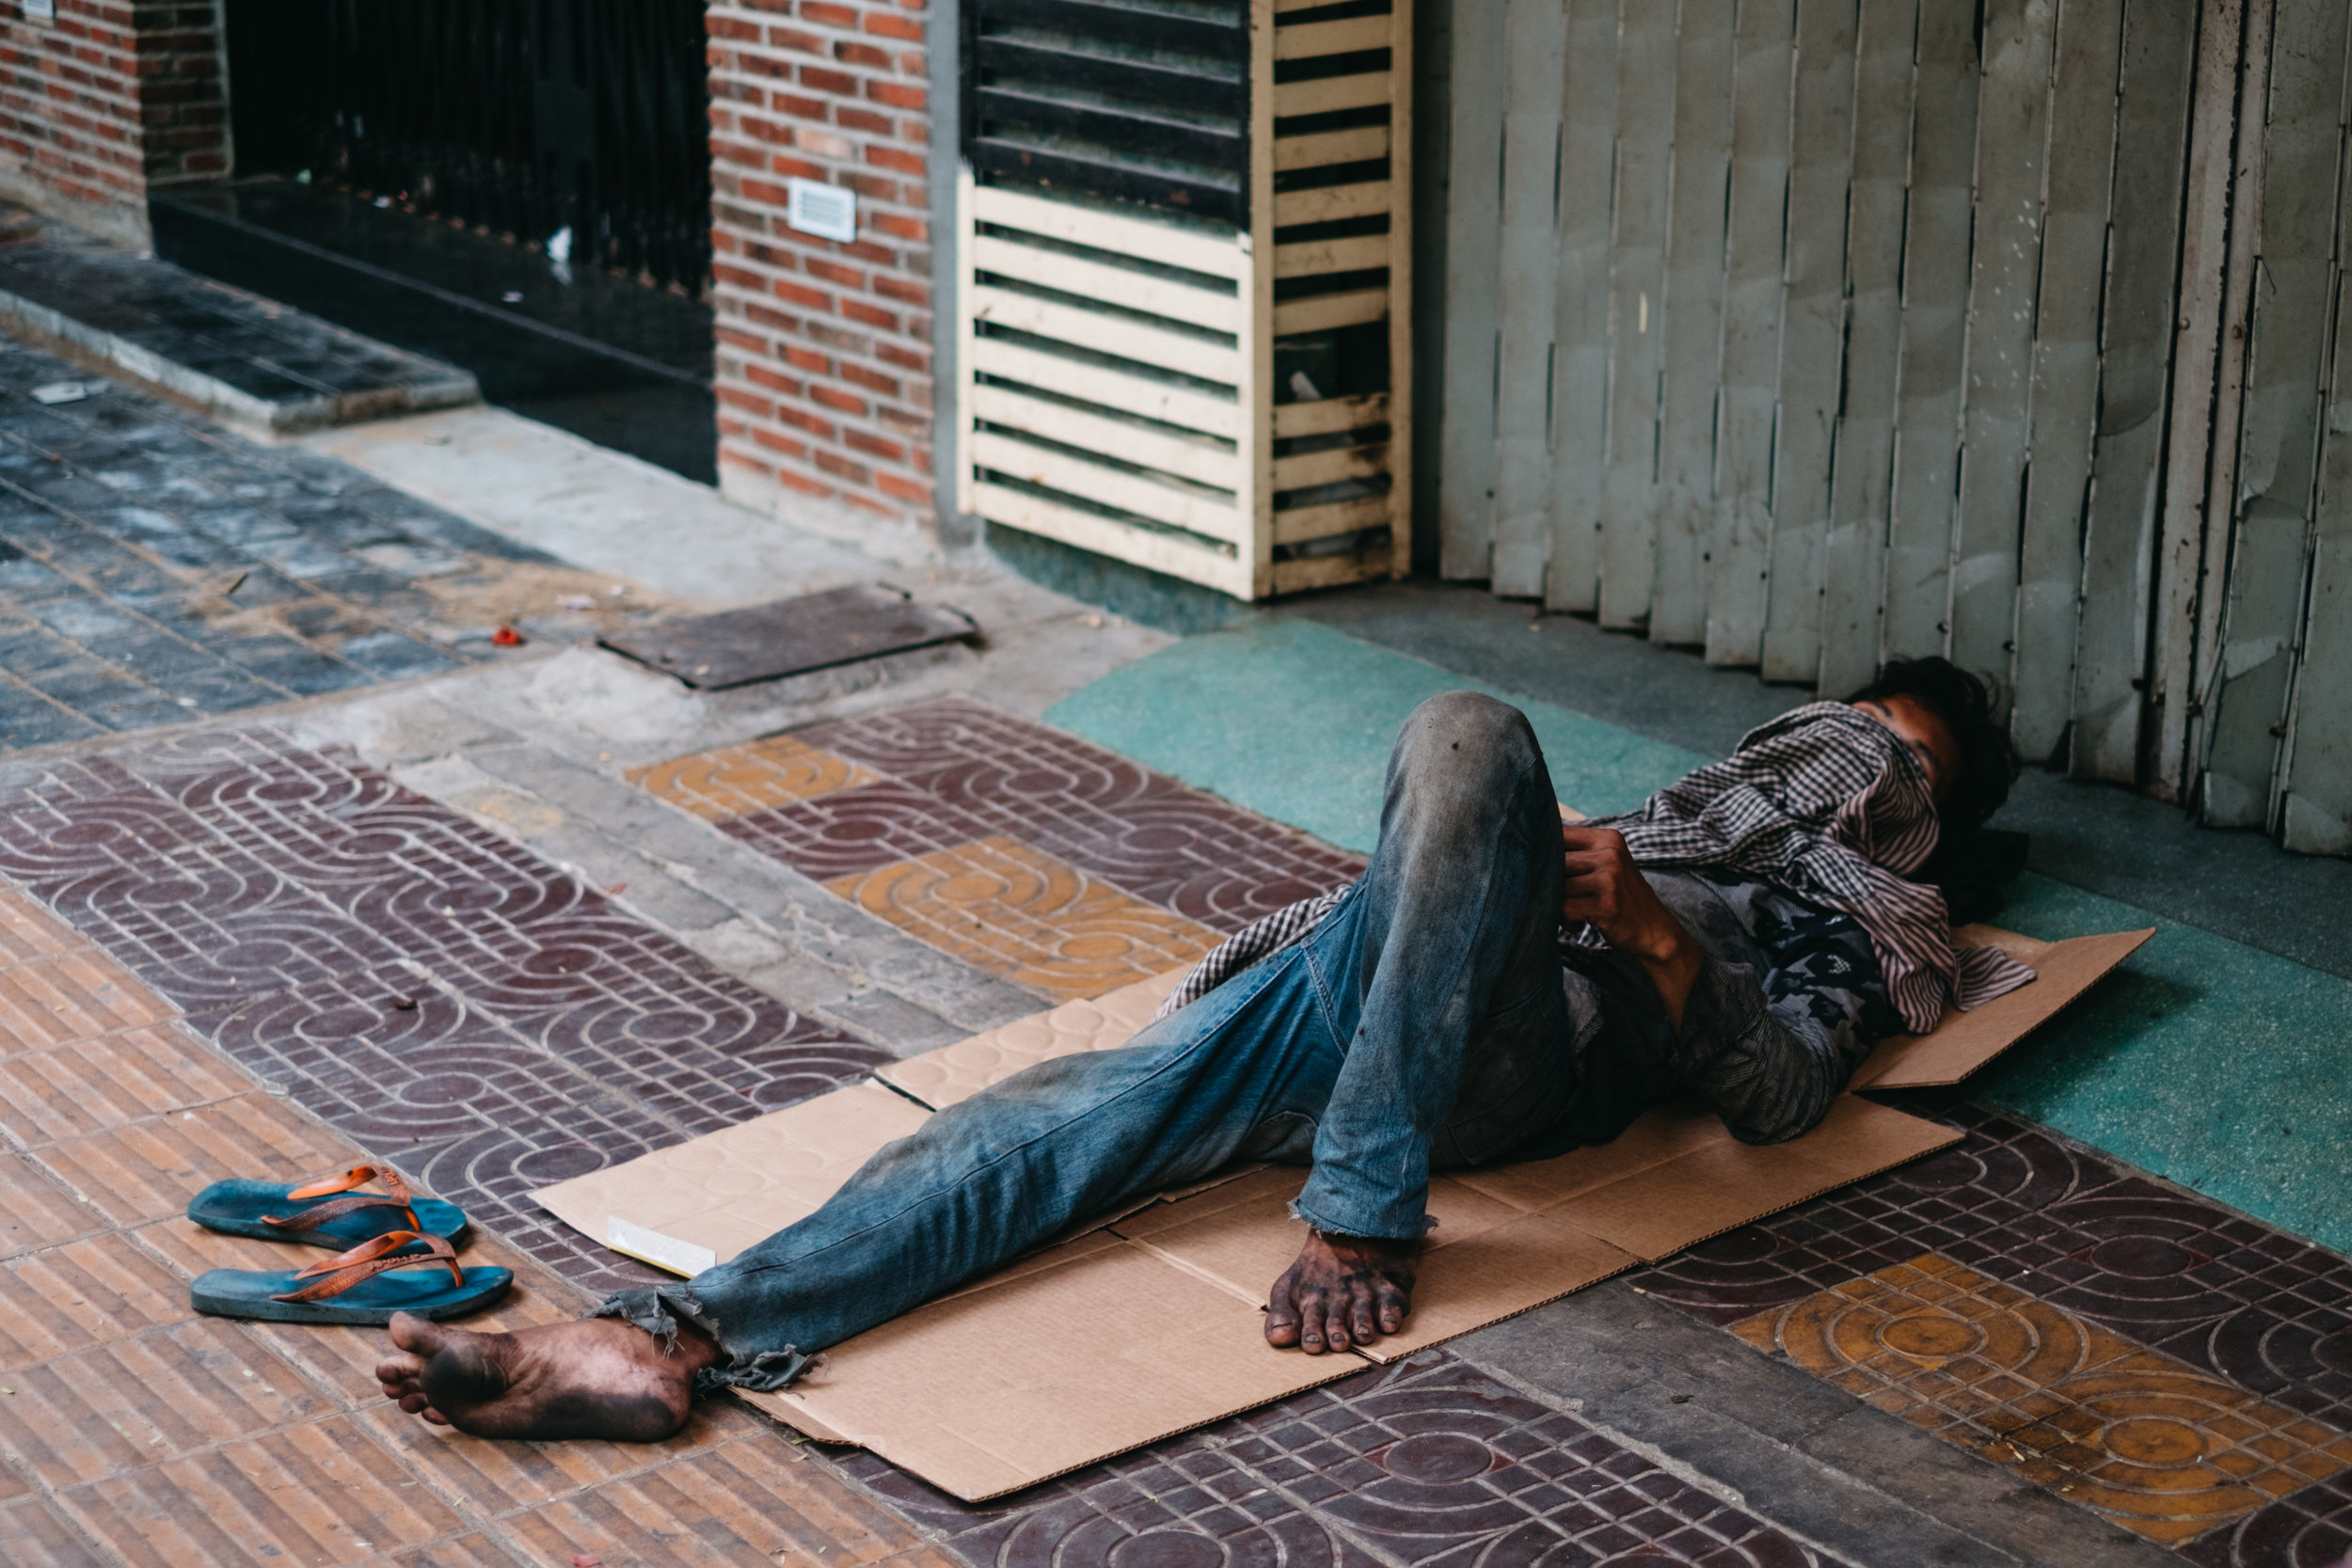 A homeless man is sleeping on the sidewalk on a piece of cardboard in Phnom Penh Cambodia